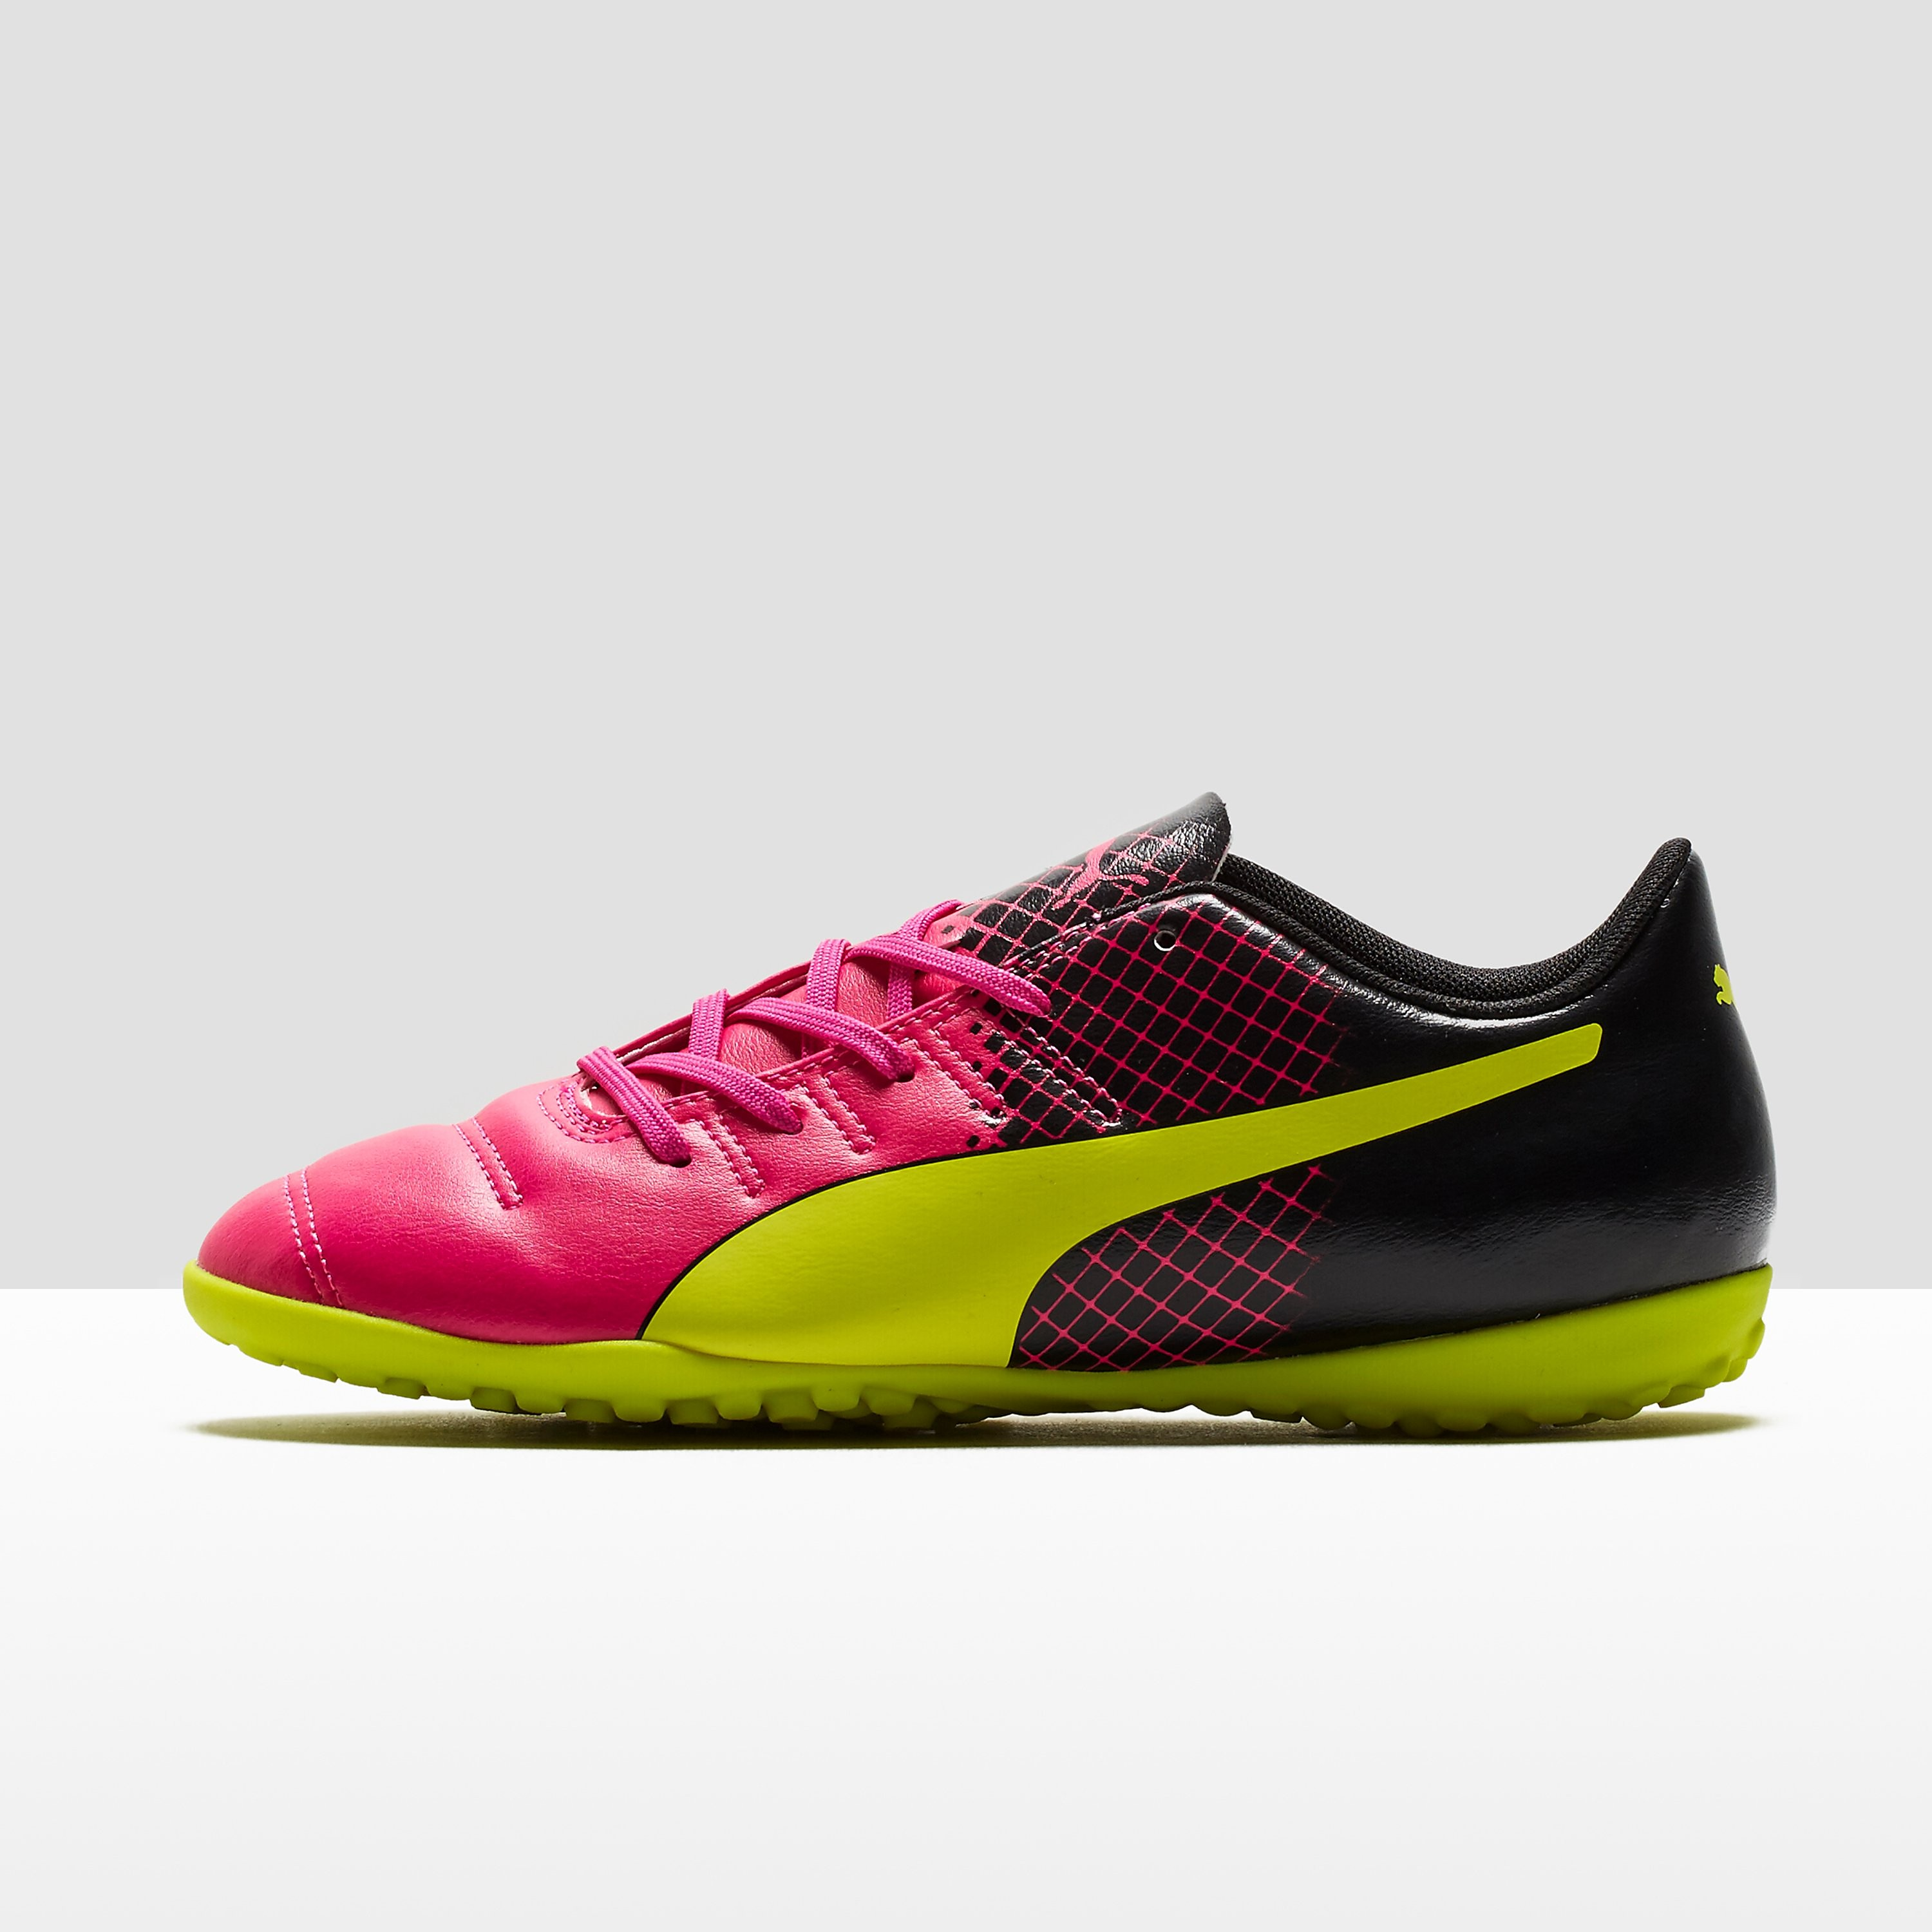 Puma evoPower 4.3 Tricks Turf Training Junior Football Boot